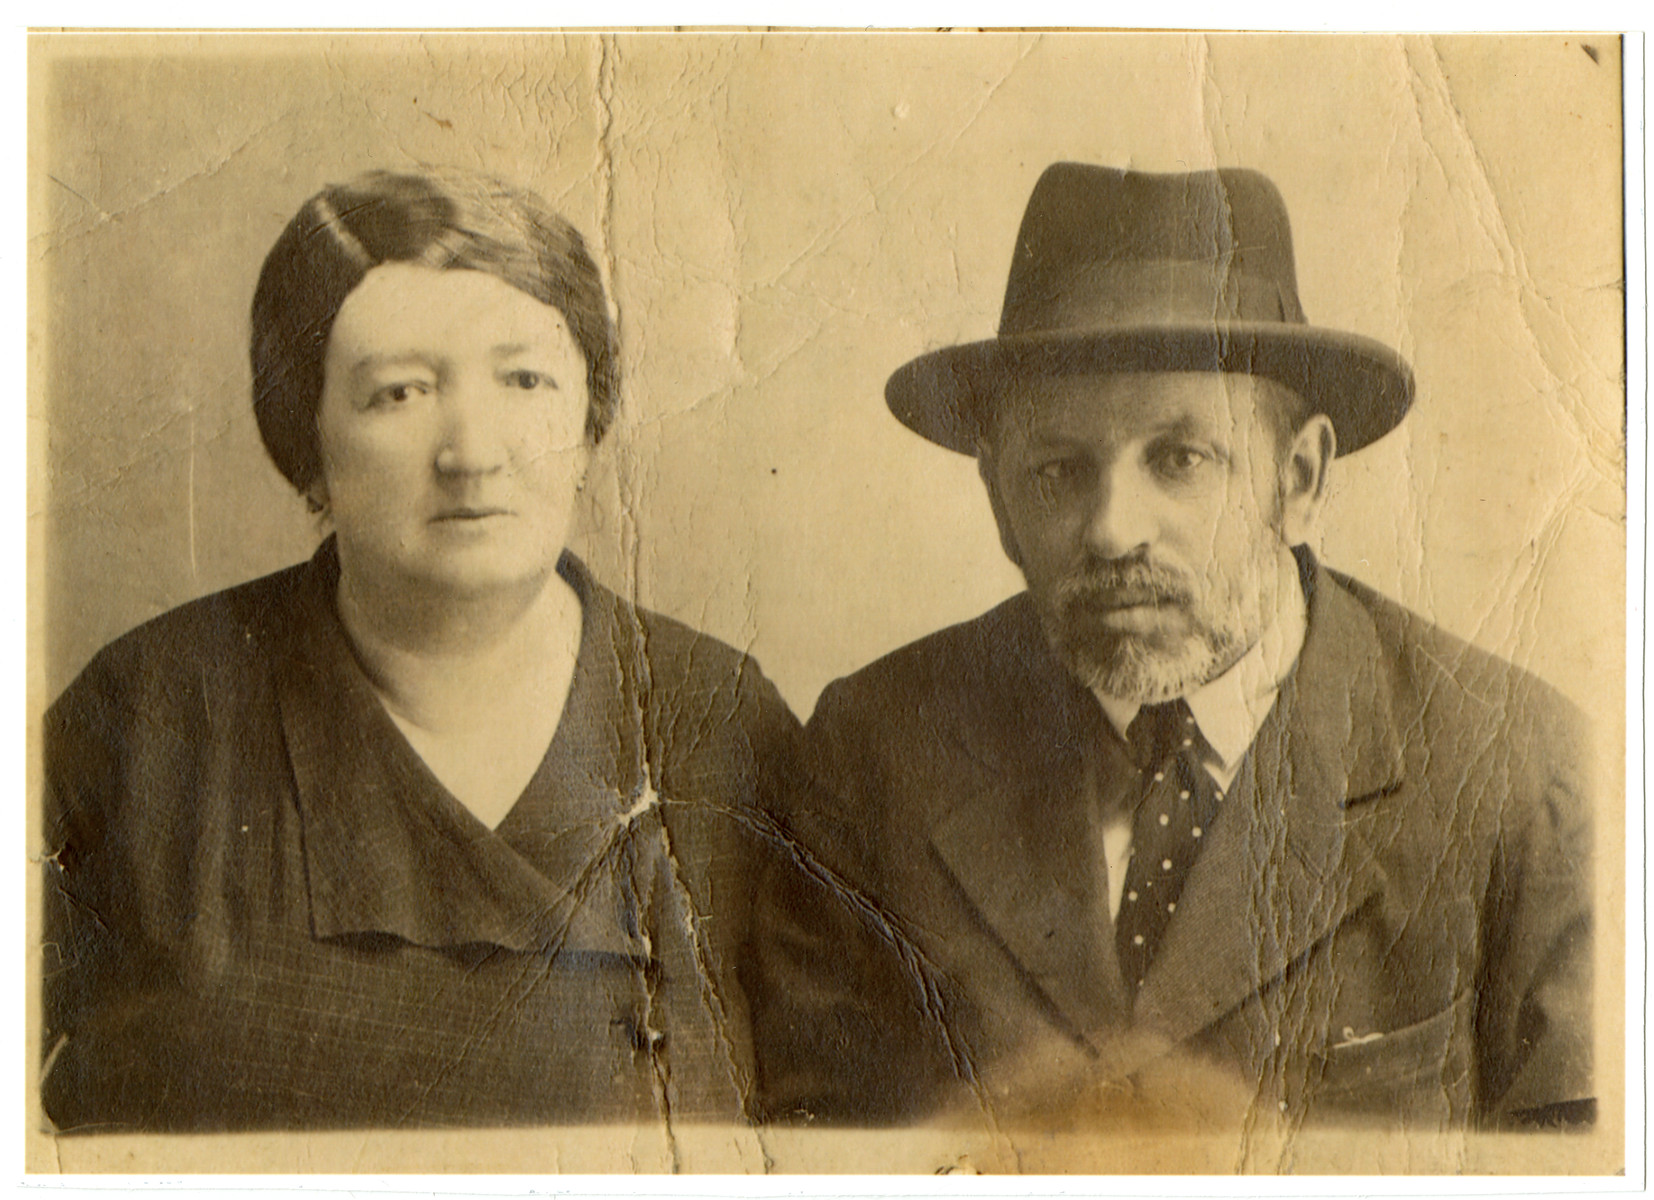 Studio portrait of Shlomo and Leah Spitzer, the parents of Alexander Sptizer.